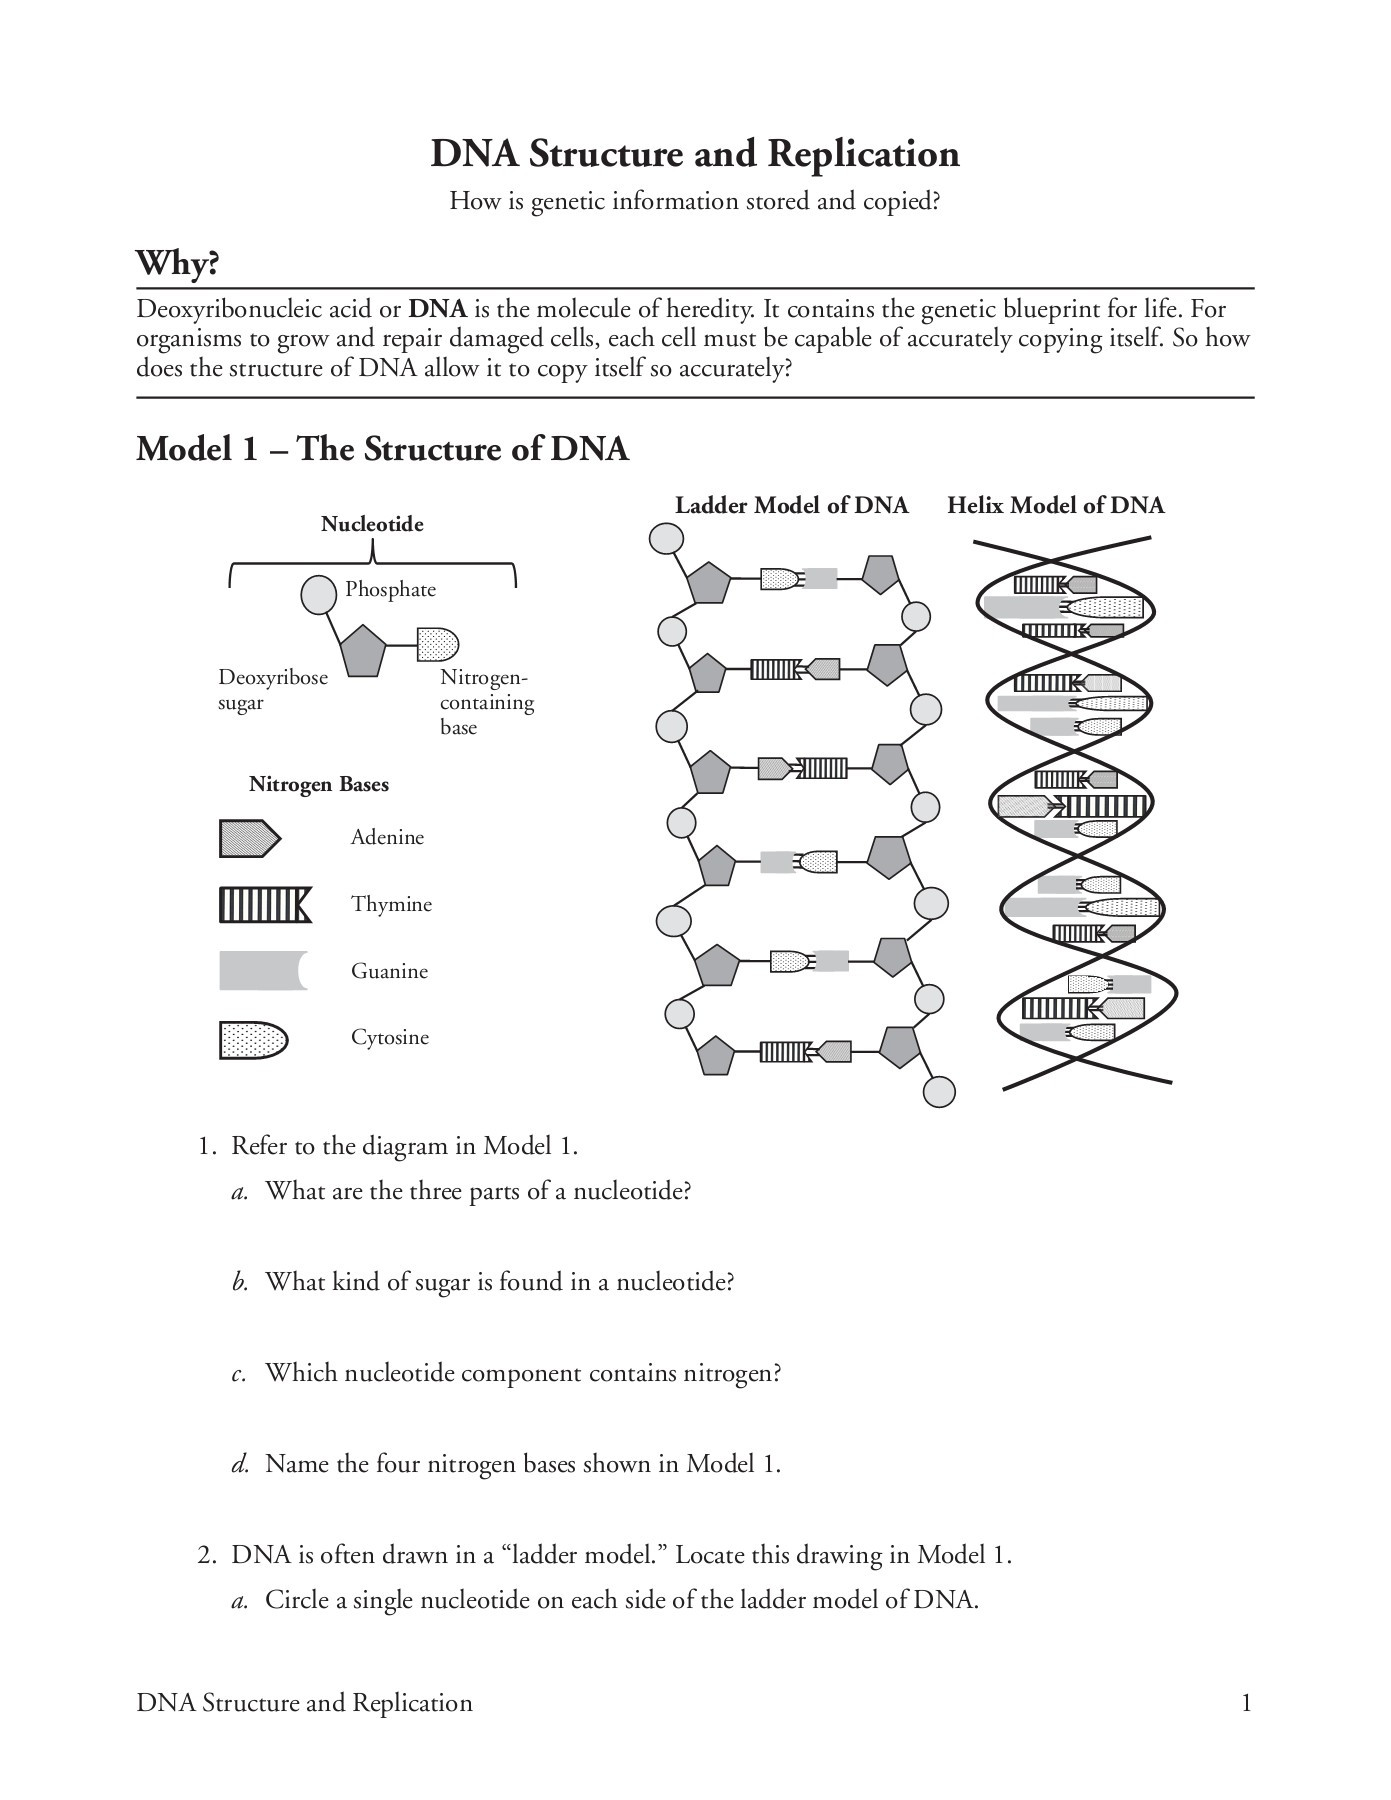 Dna Structure and Replication Worksheet